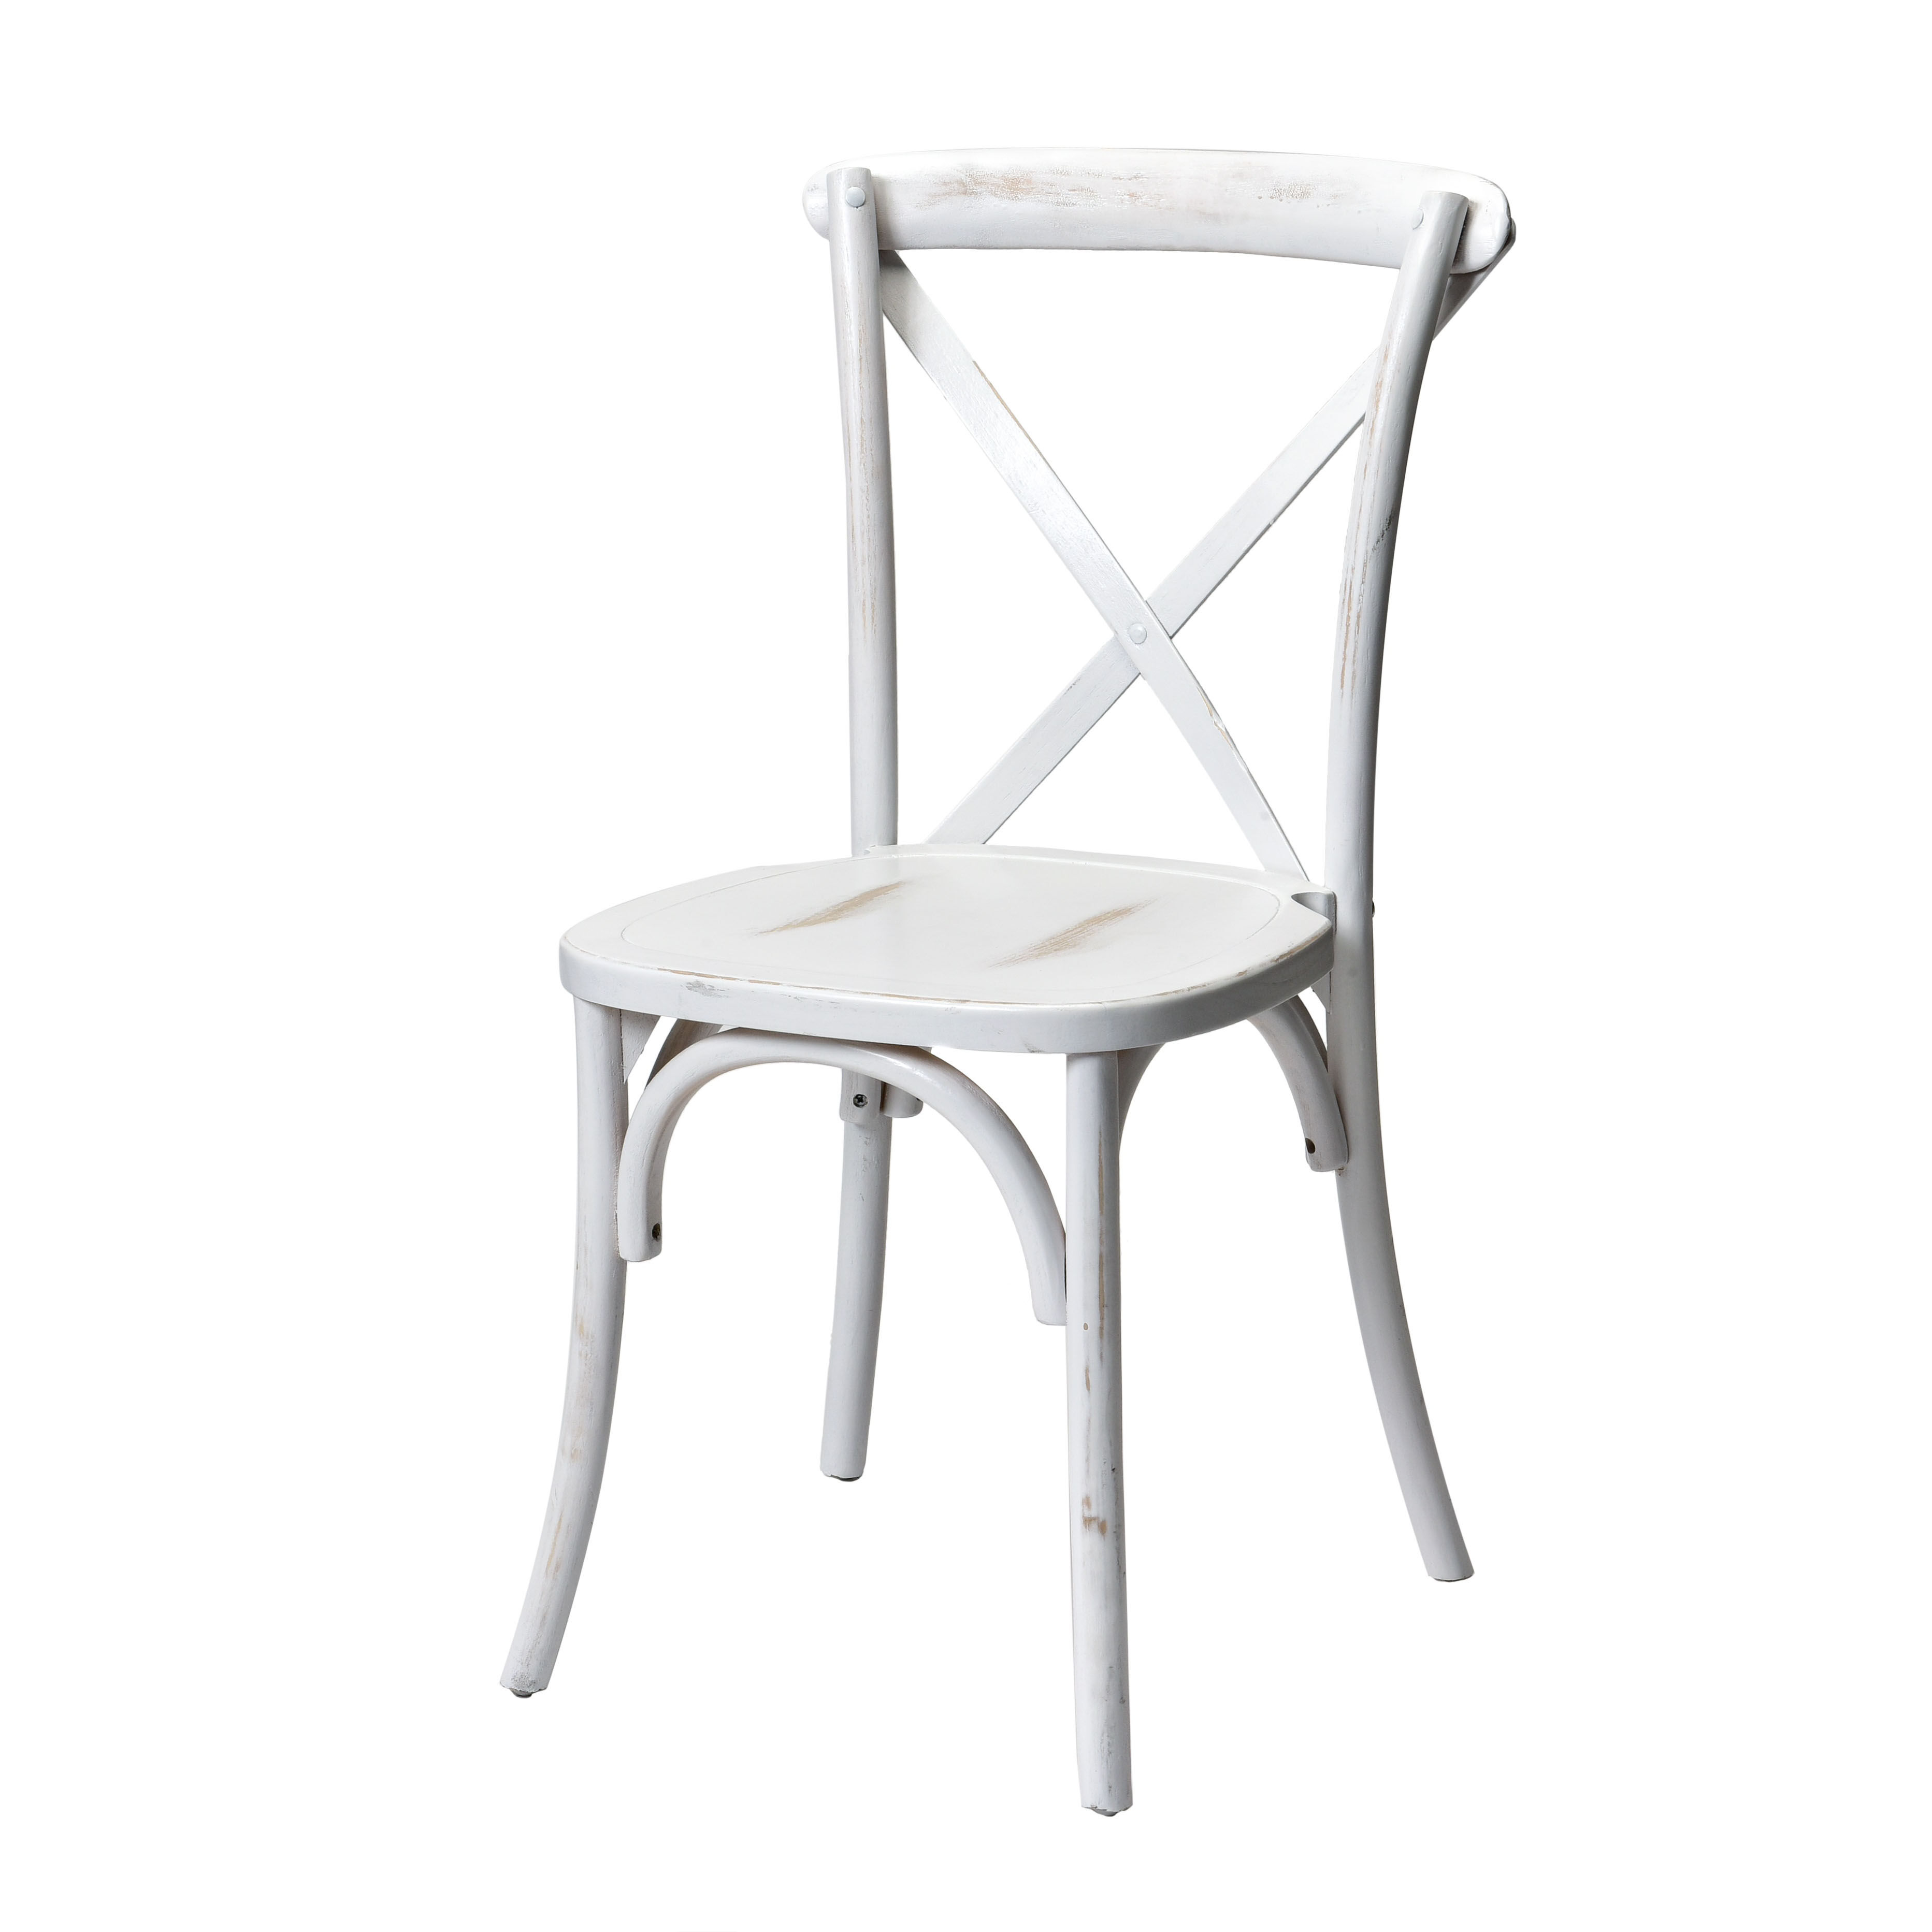 ... Our Rustic Sonoma Solid Wood Cross Back Stackable Dining Chair   White  Wash Is On Sale ...